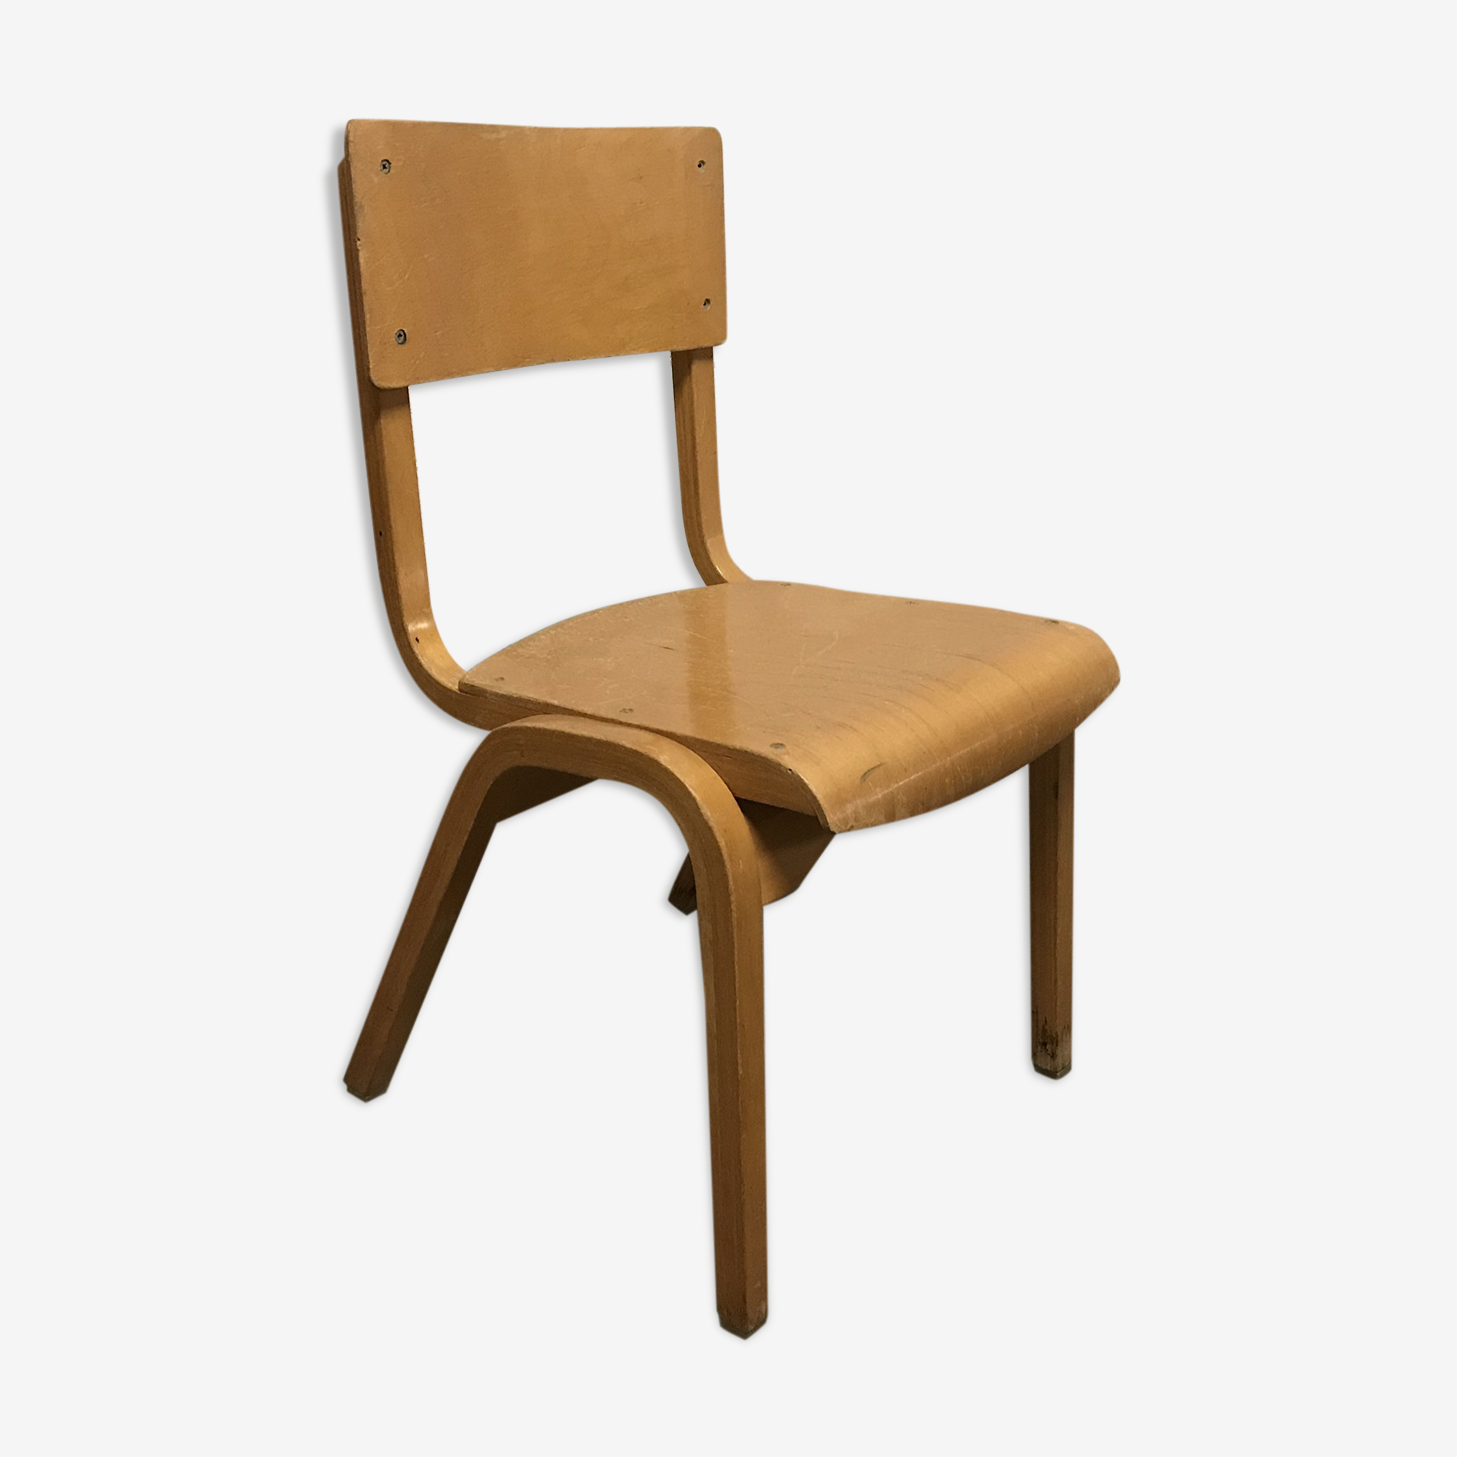 Child chair baumann from the 1960s curved wooden